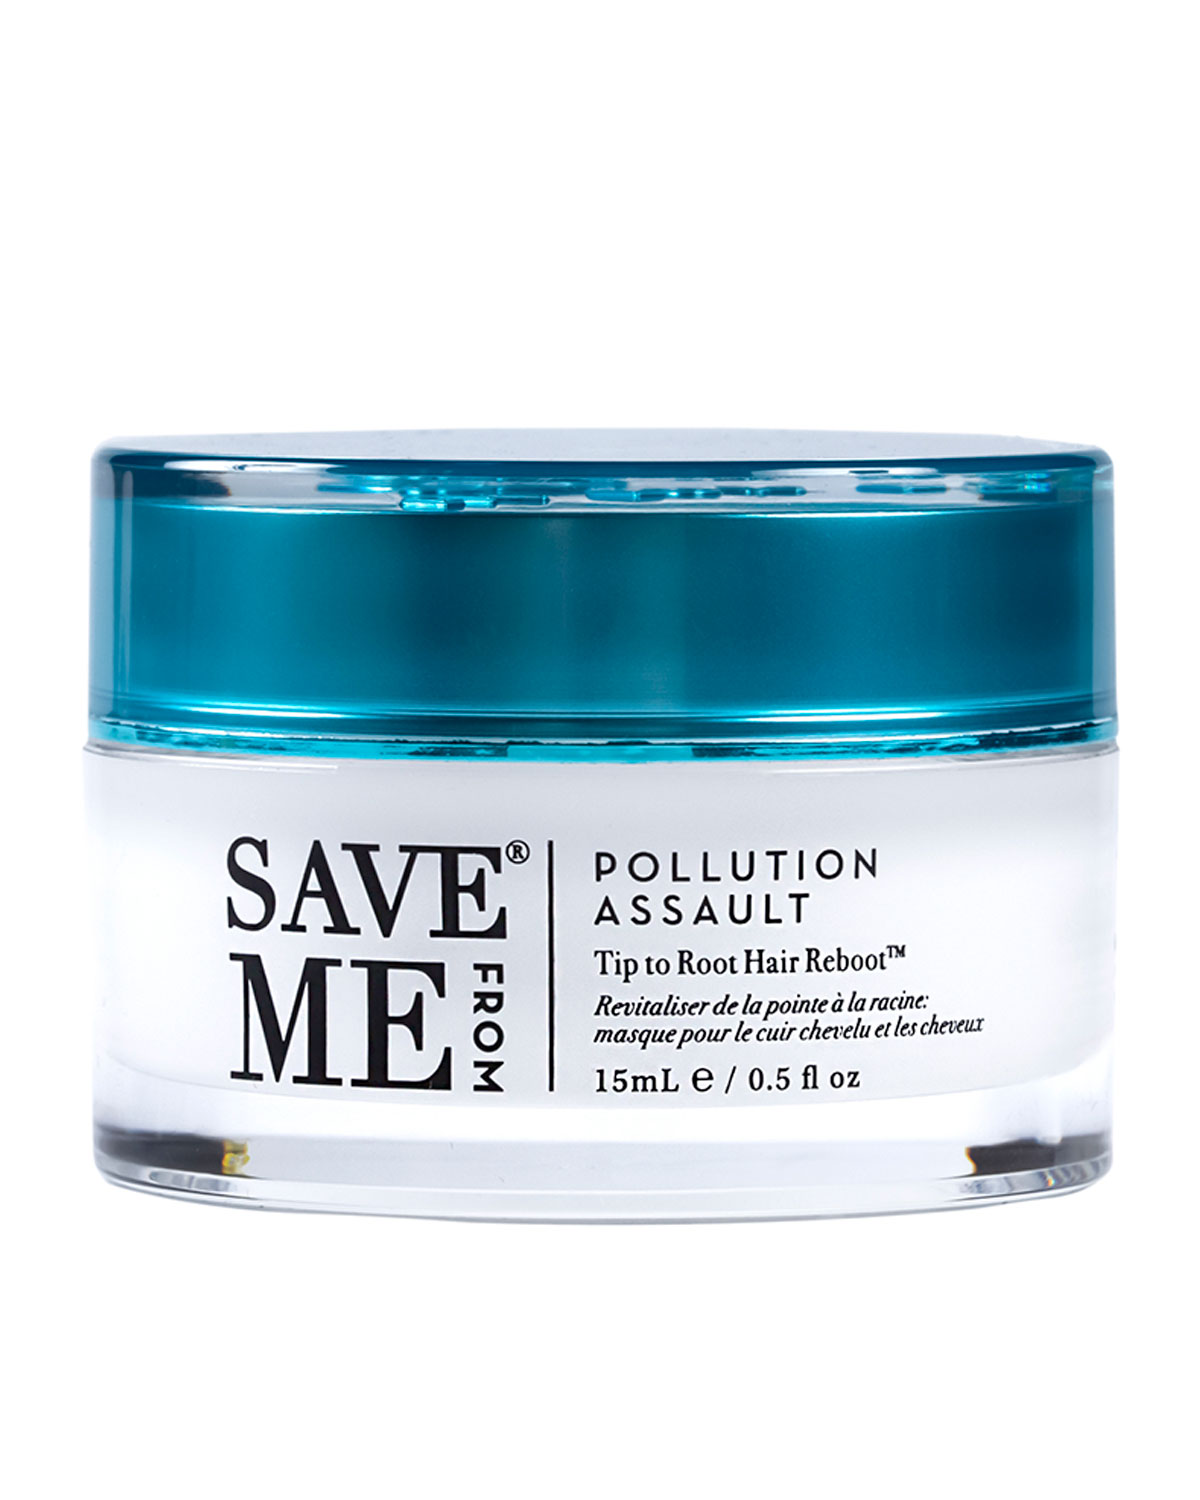 Save Me From Pollution Assault Tip to Root Hair Reboot, 0.5 oz./ 15 mL